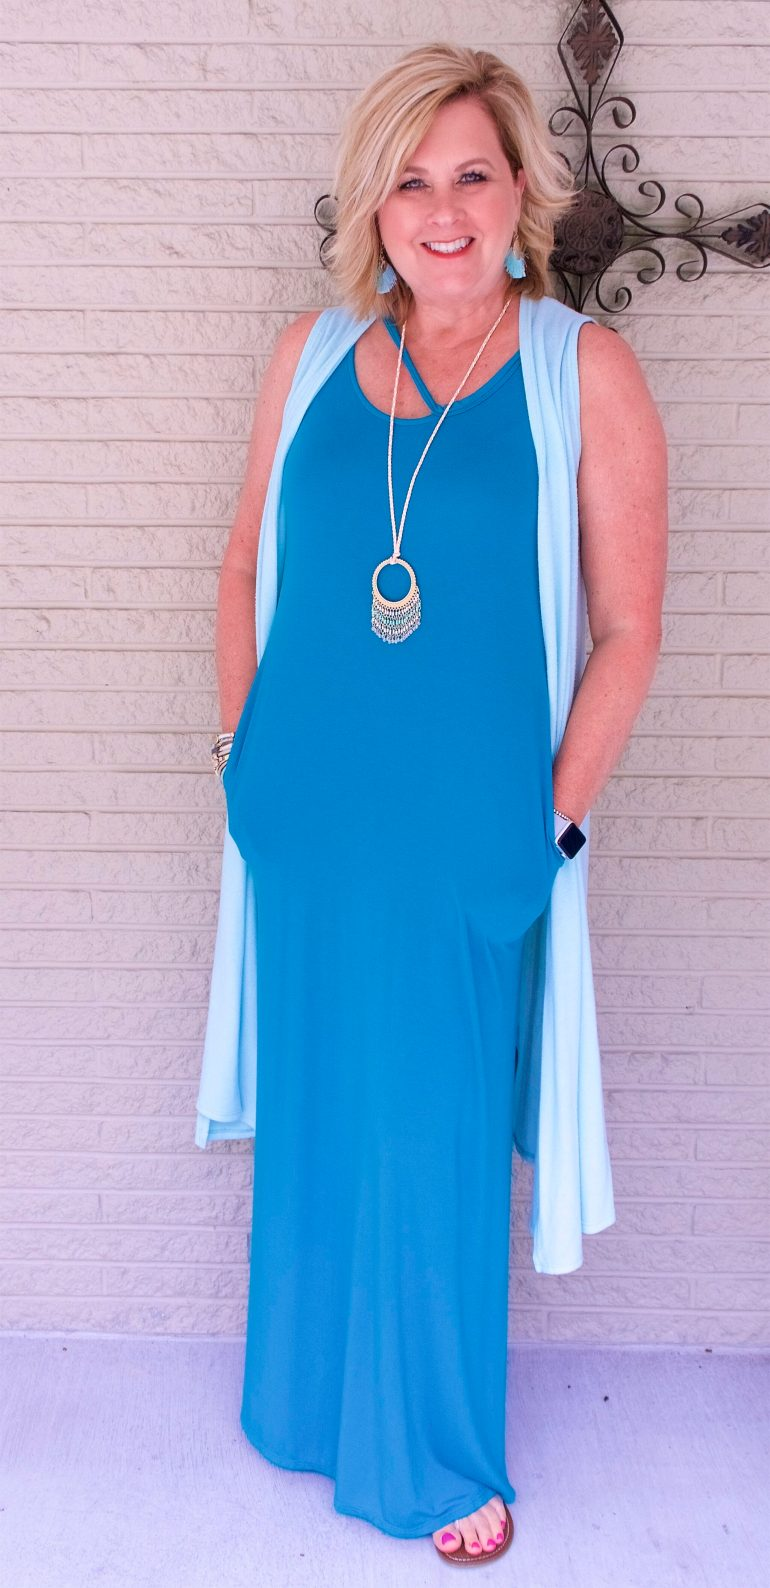 50 IS NOT OLD | A MAXI DRESS AND A LONG VEST | FASHION OVER 40